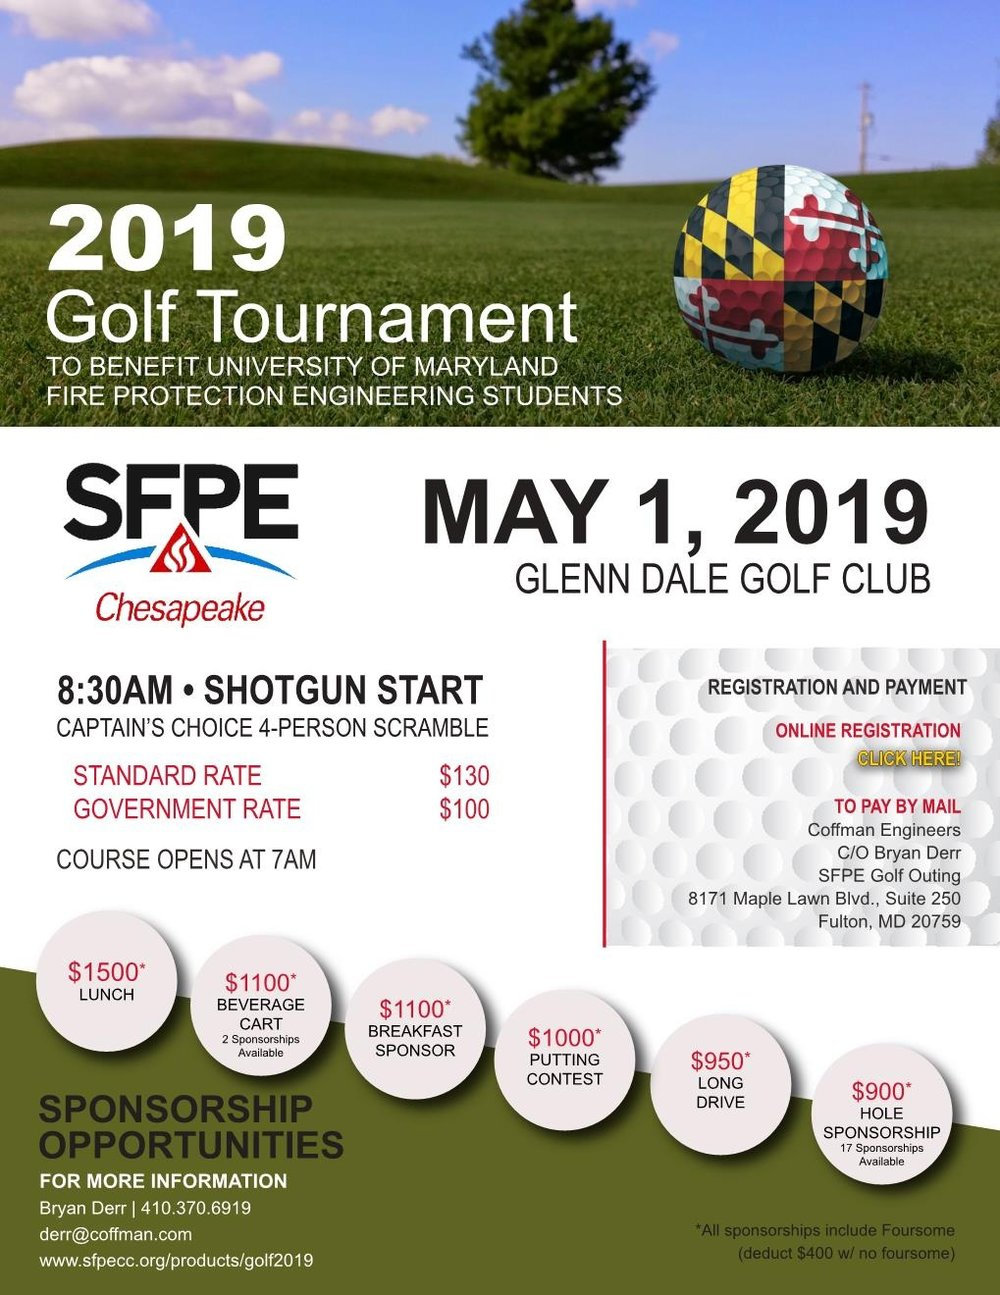 SPFE Golf Tournament Flyer 2019.jpg